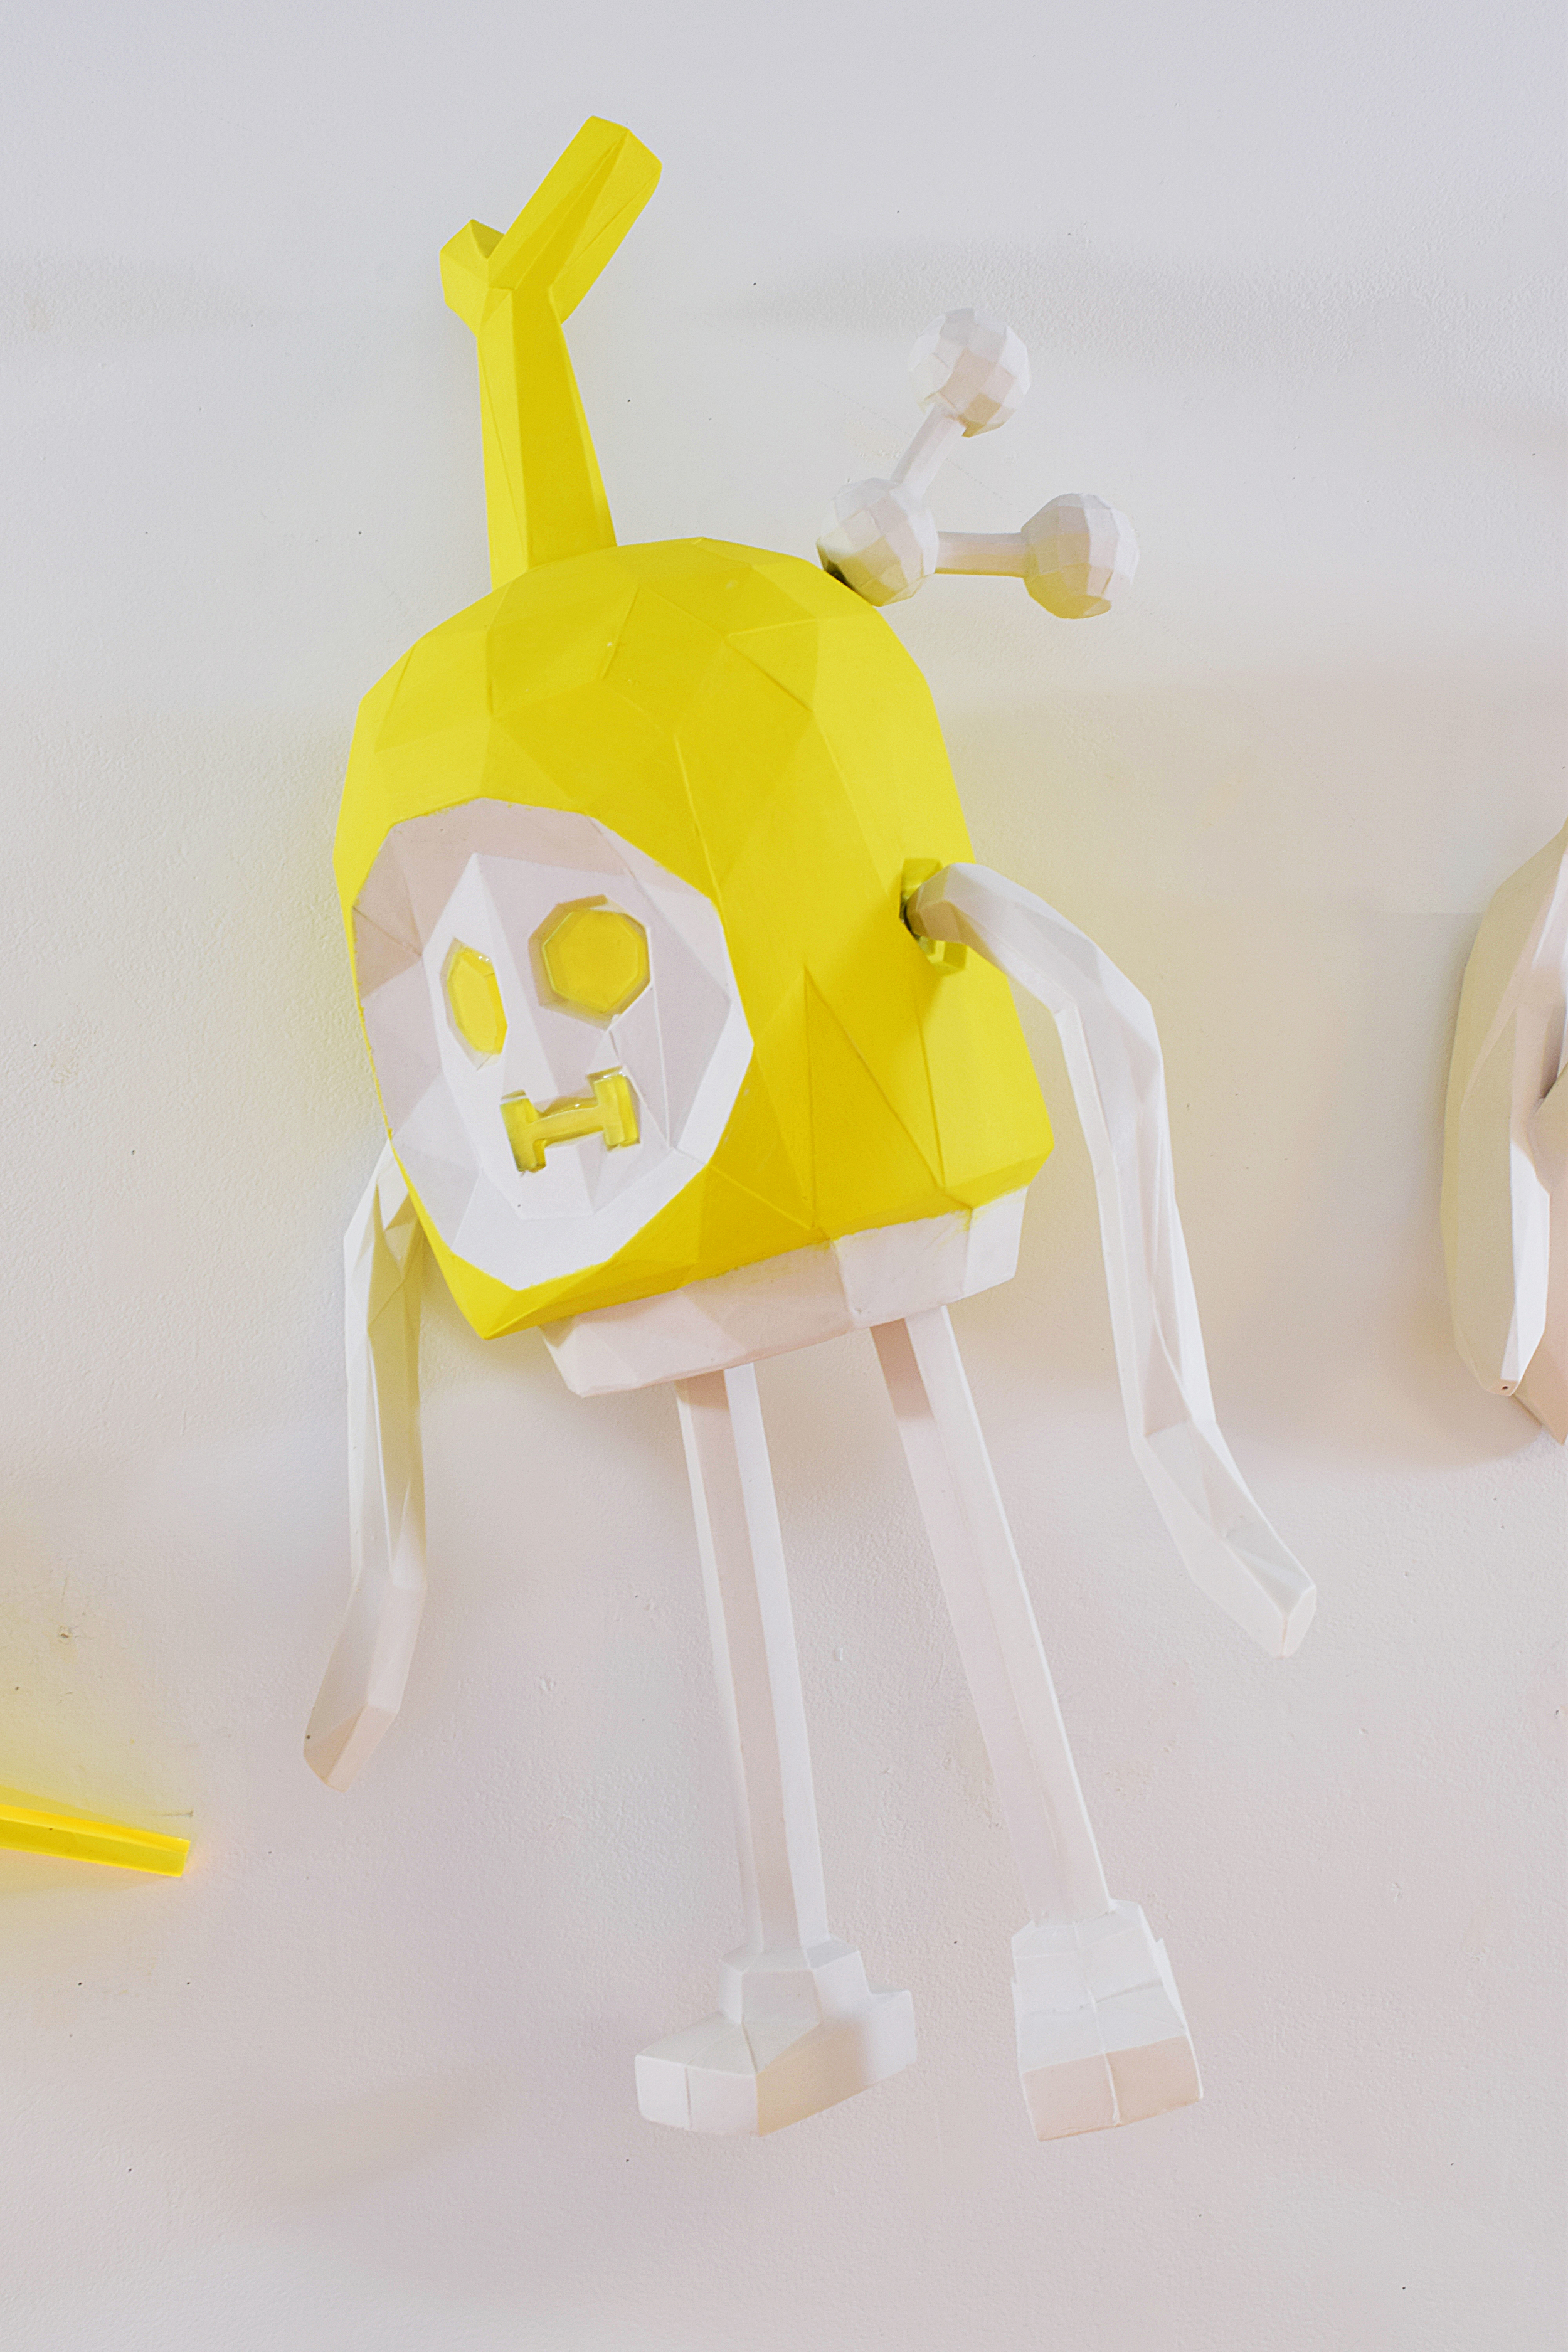 Plate of Bananas Yellow (detail, banana guy with share icon)